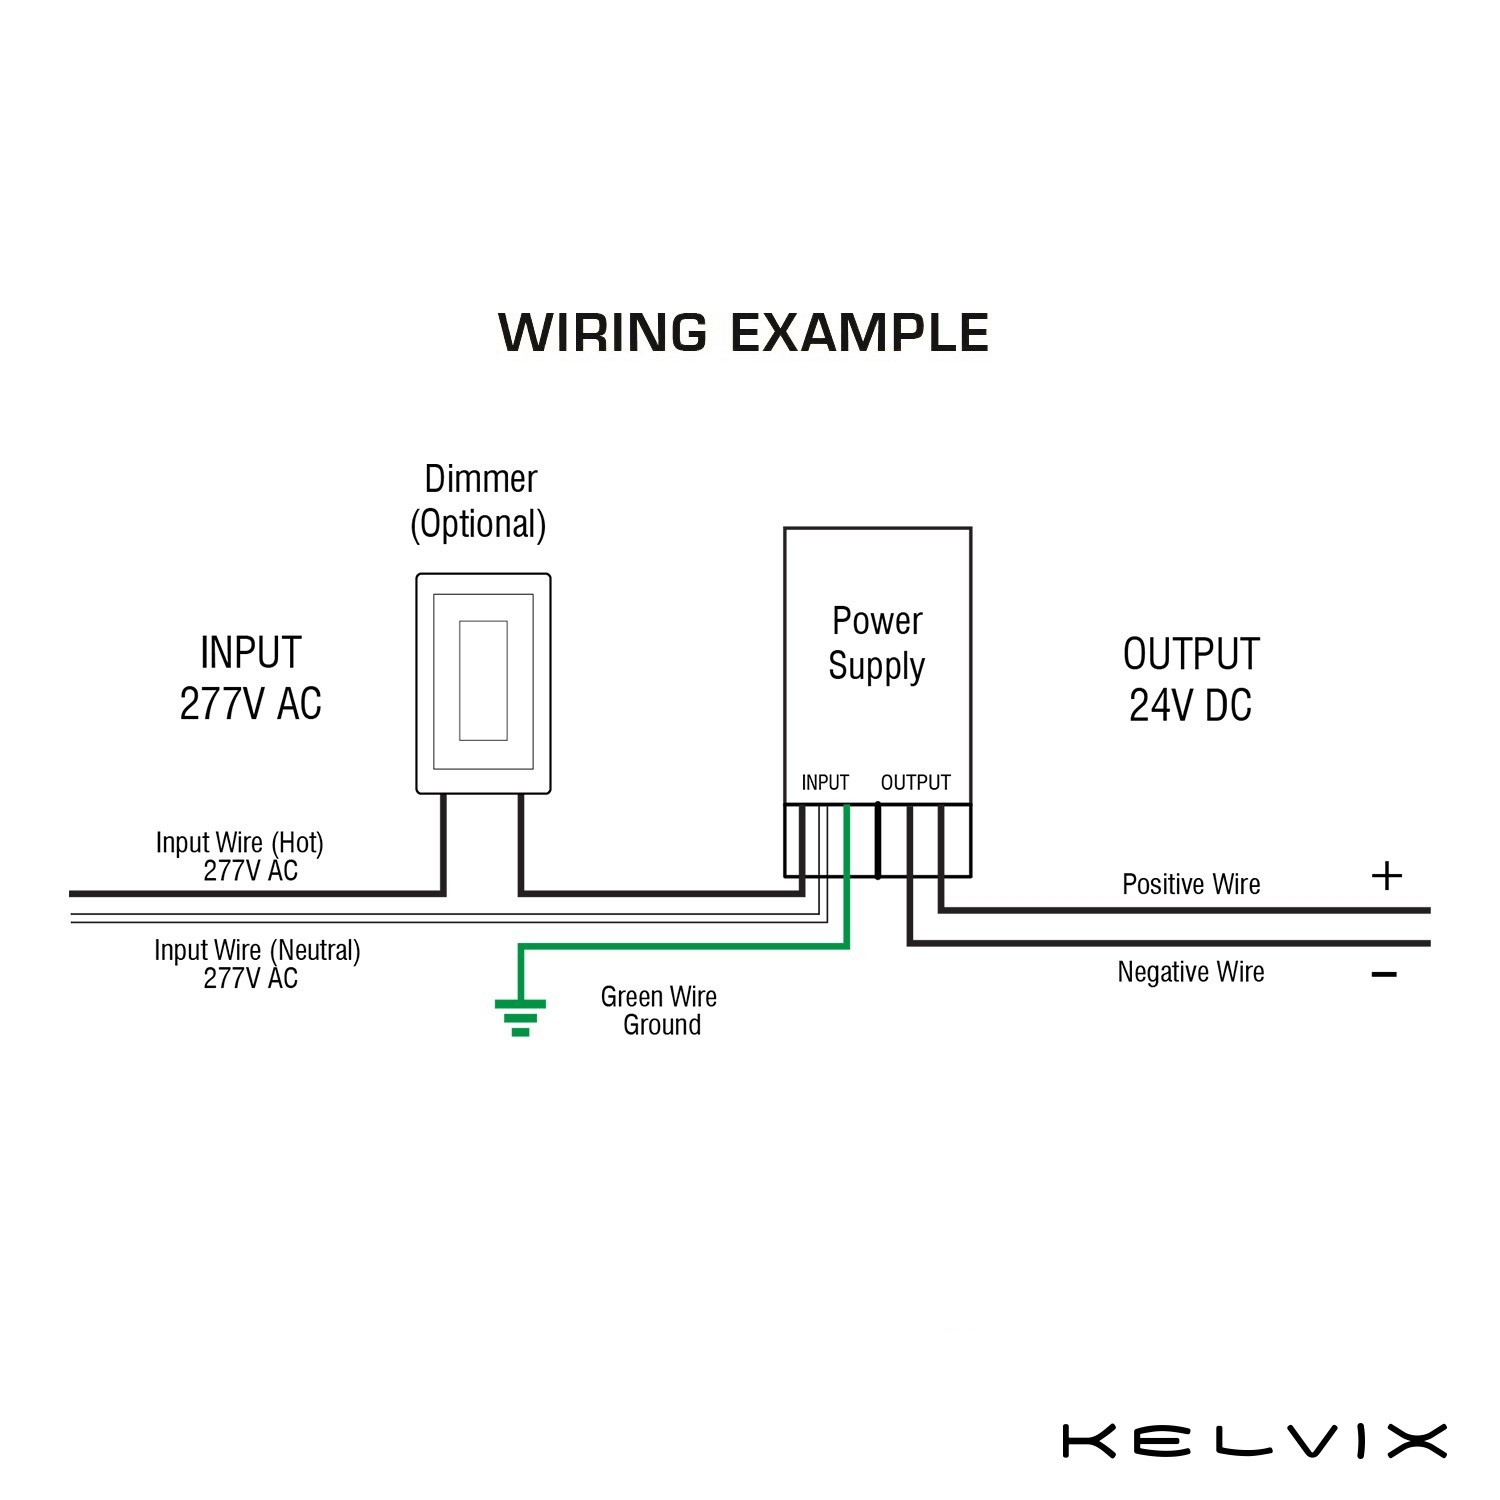 Series Wiring Diagram 277 Wiring Diagram Advance